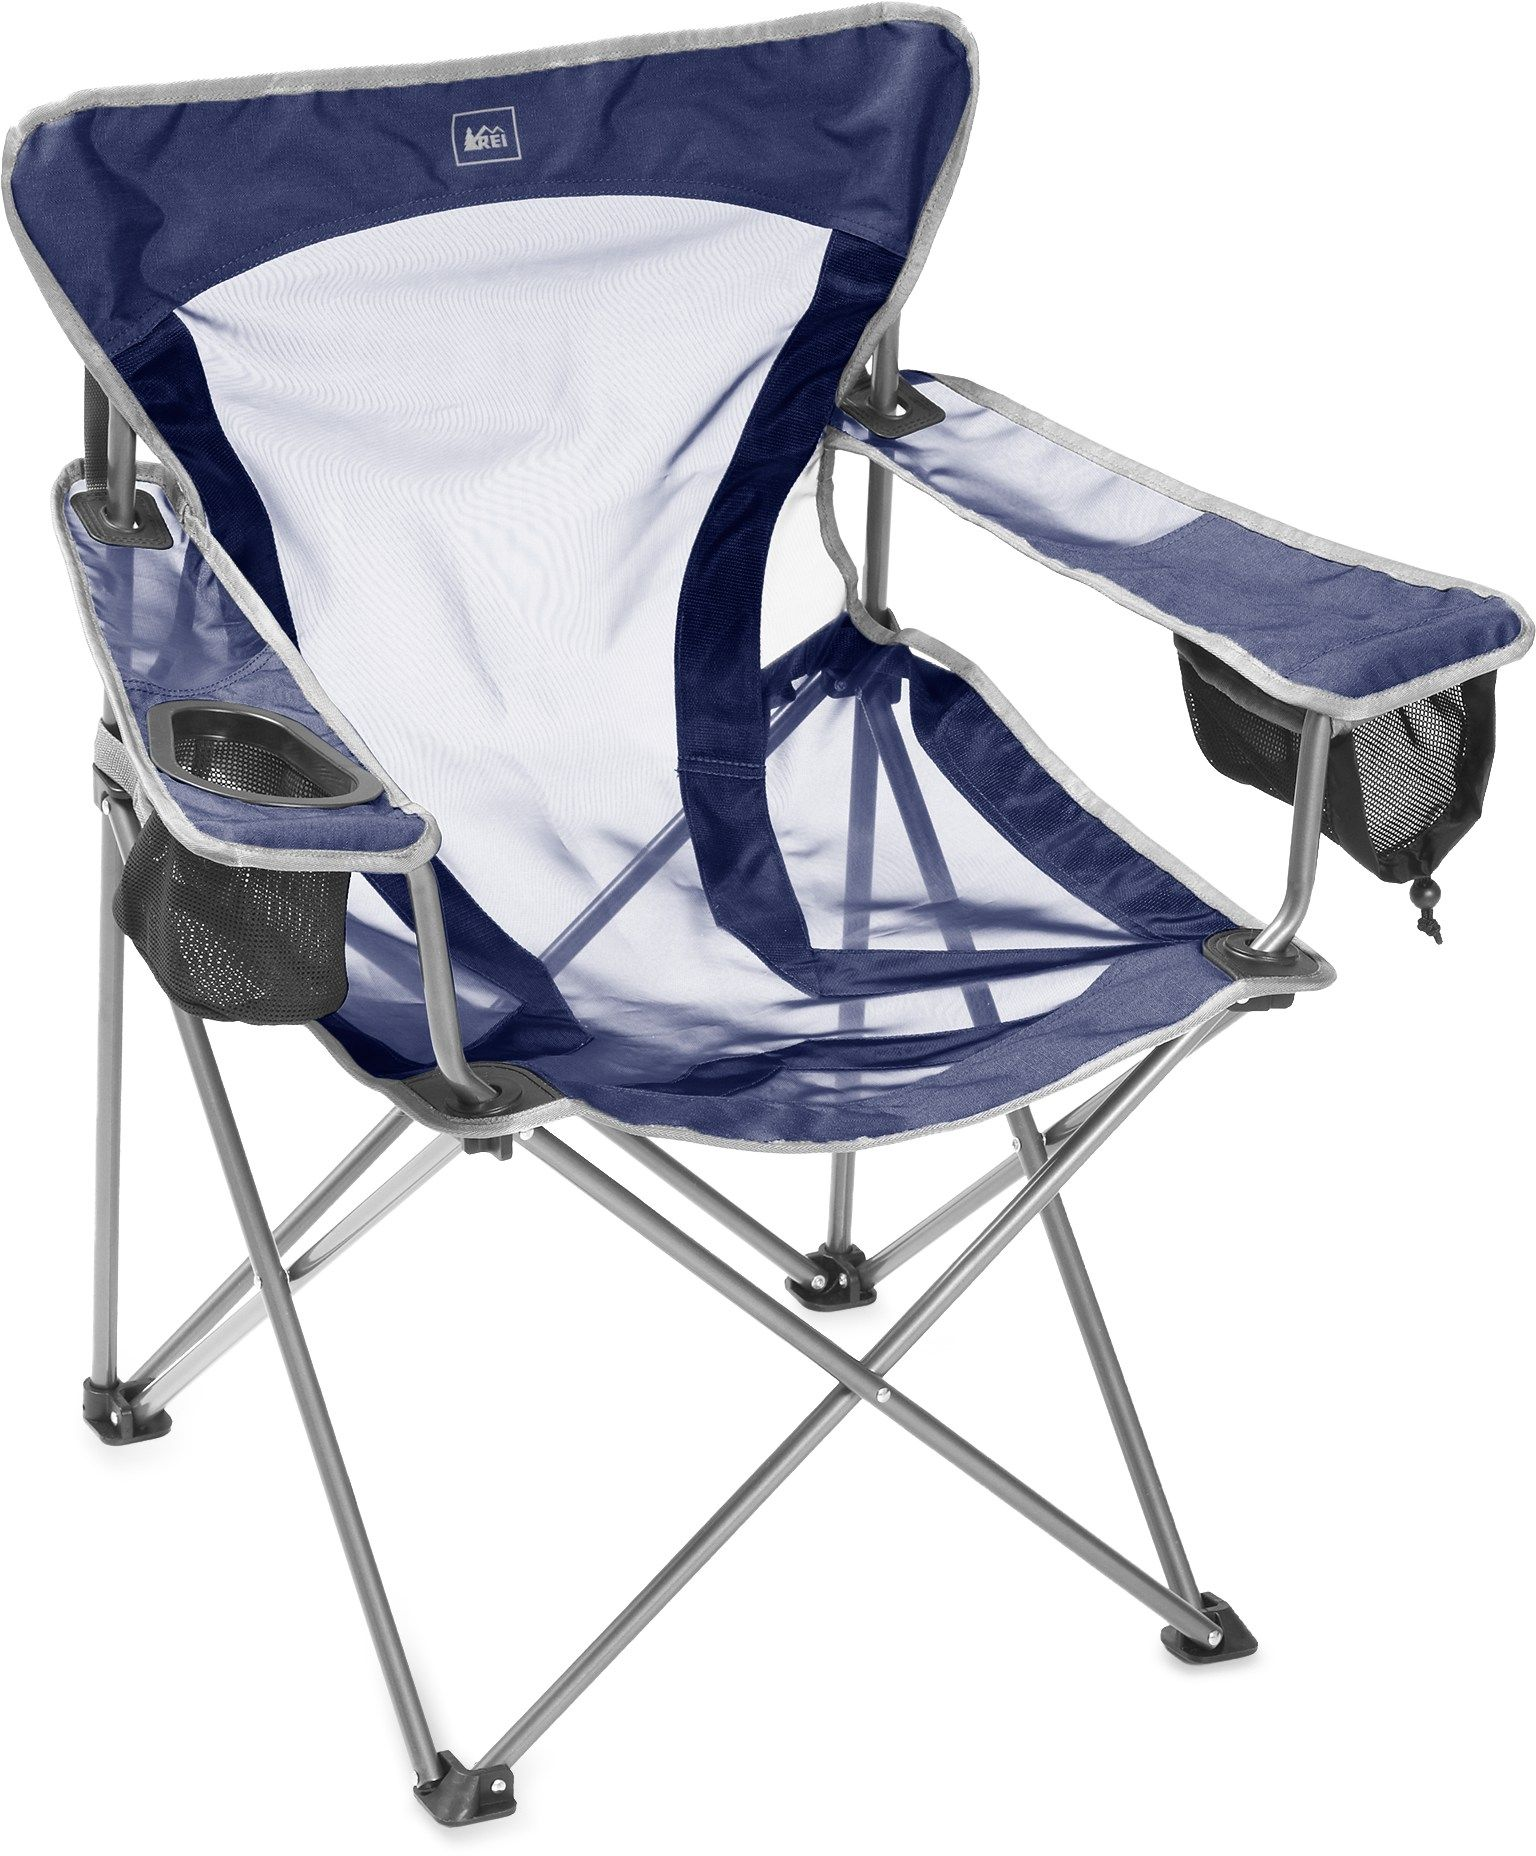 North Camp Stuhl Rei Camp X Chair Rei Coloradolife Pinterest Camping